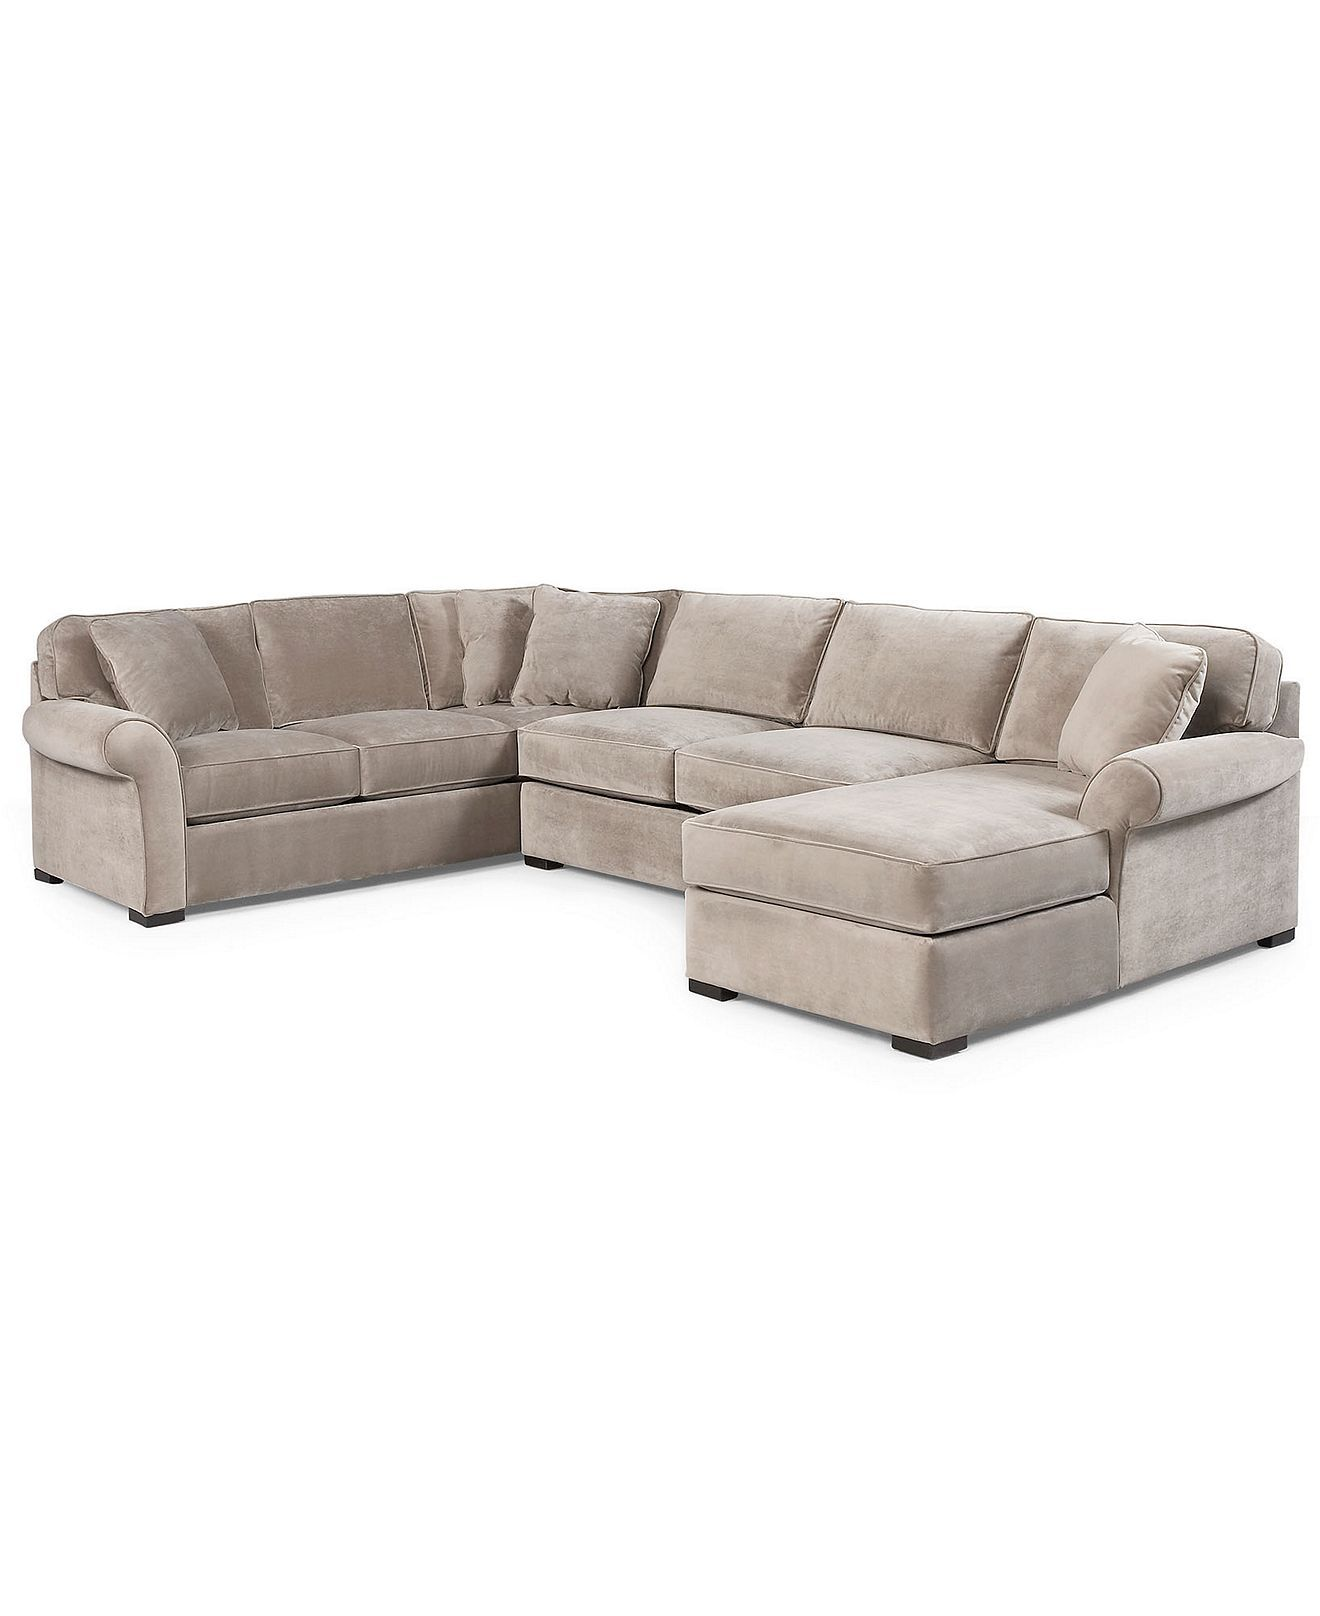 Best Joyce Fabric Sectional Sofa 3 Piece Apartment Sofa 640 x 480